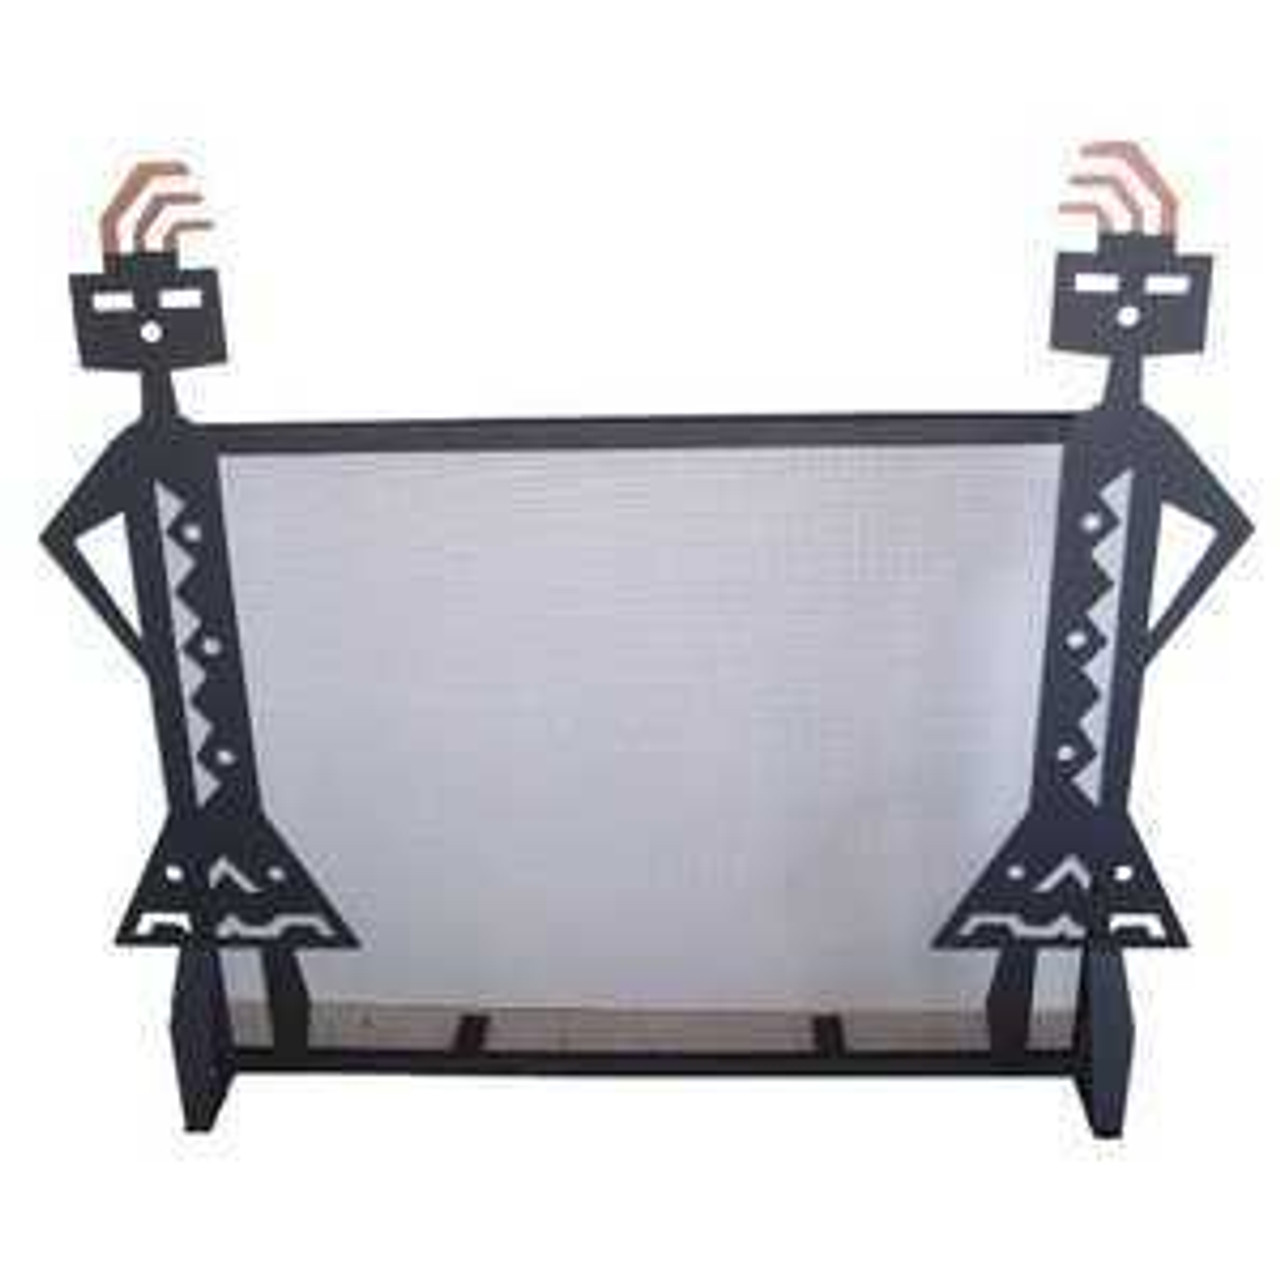 Southwest Fireplace Screens & Accessories